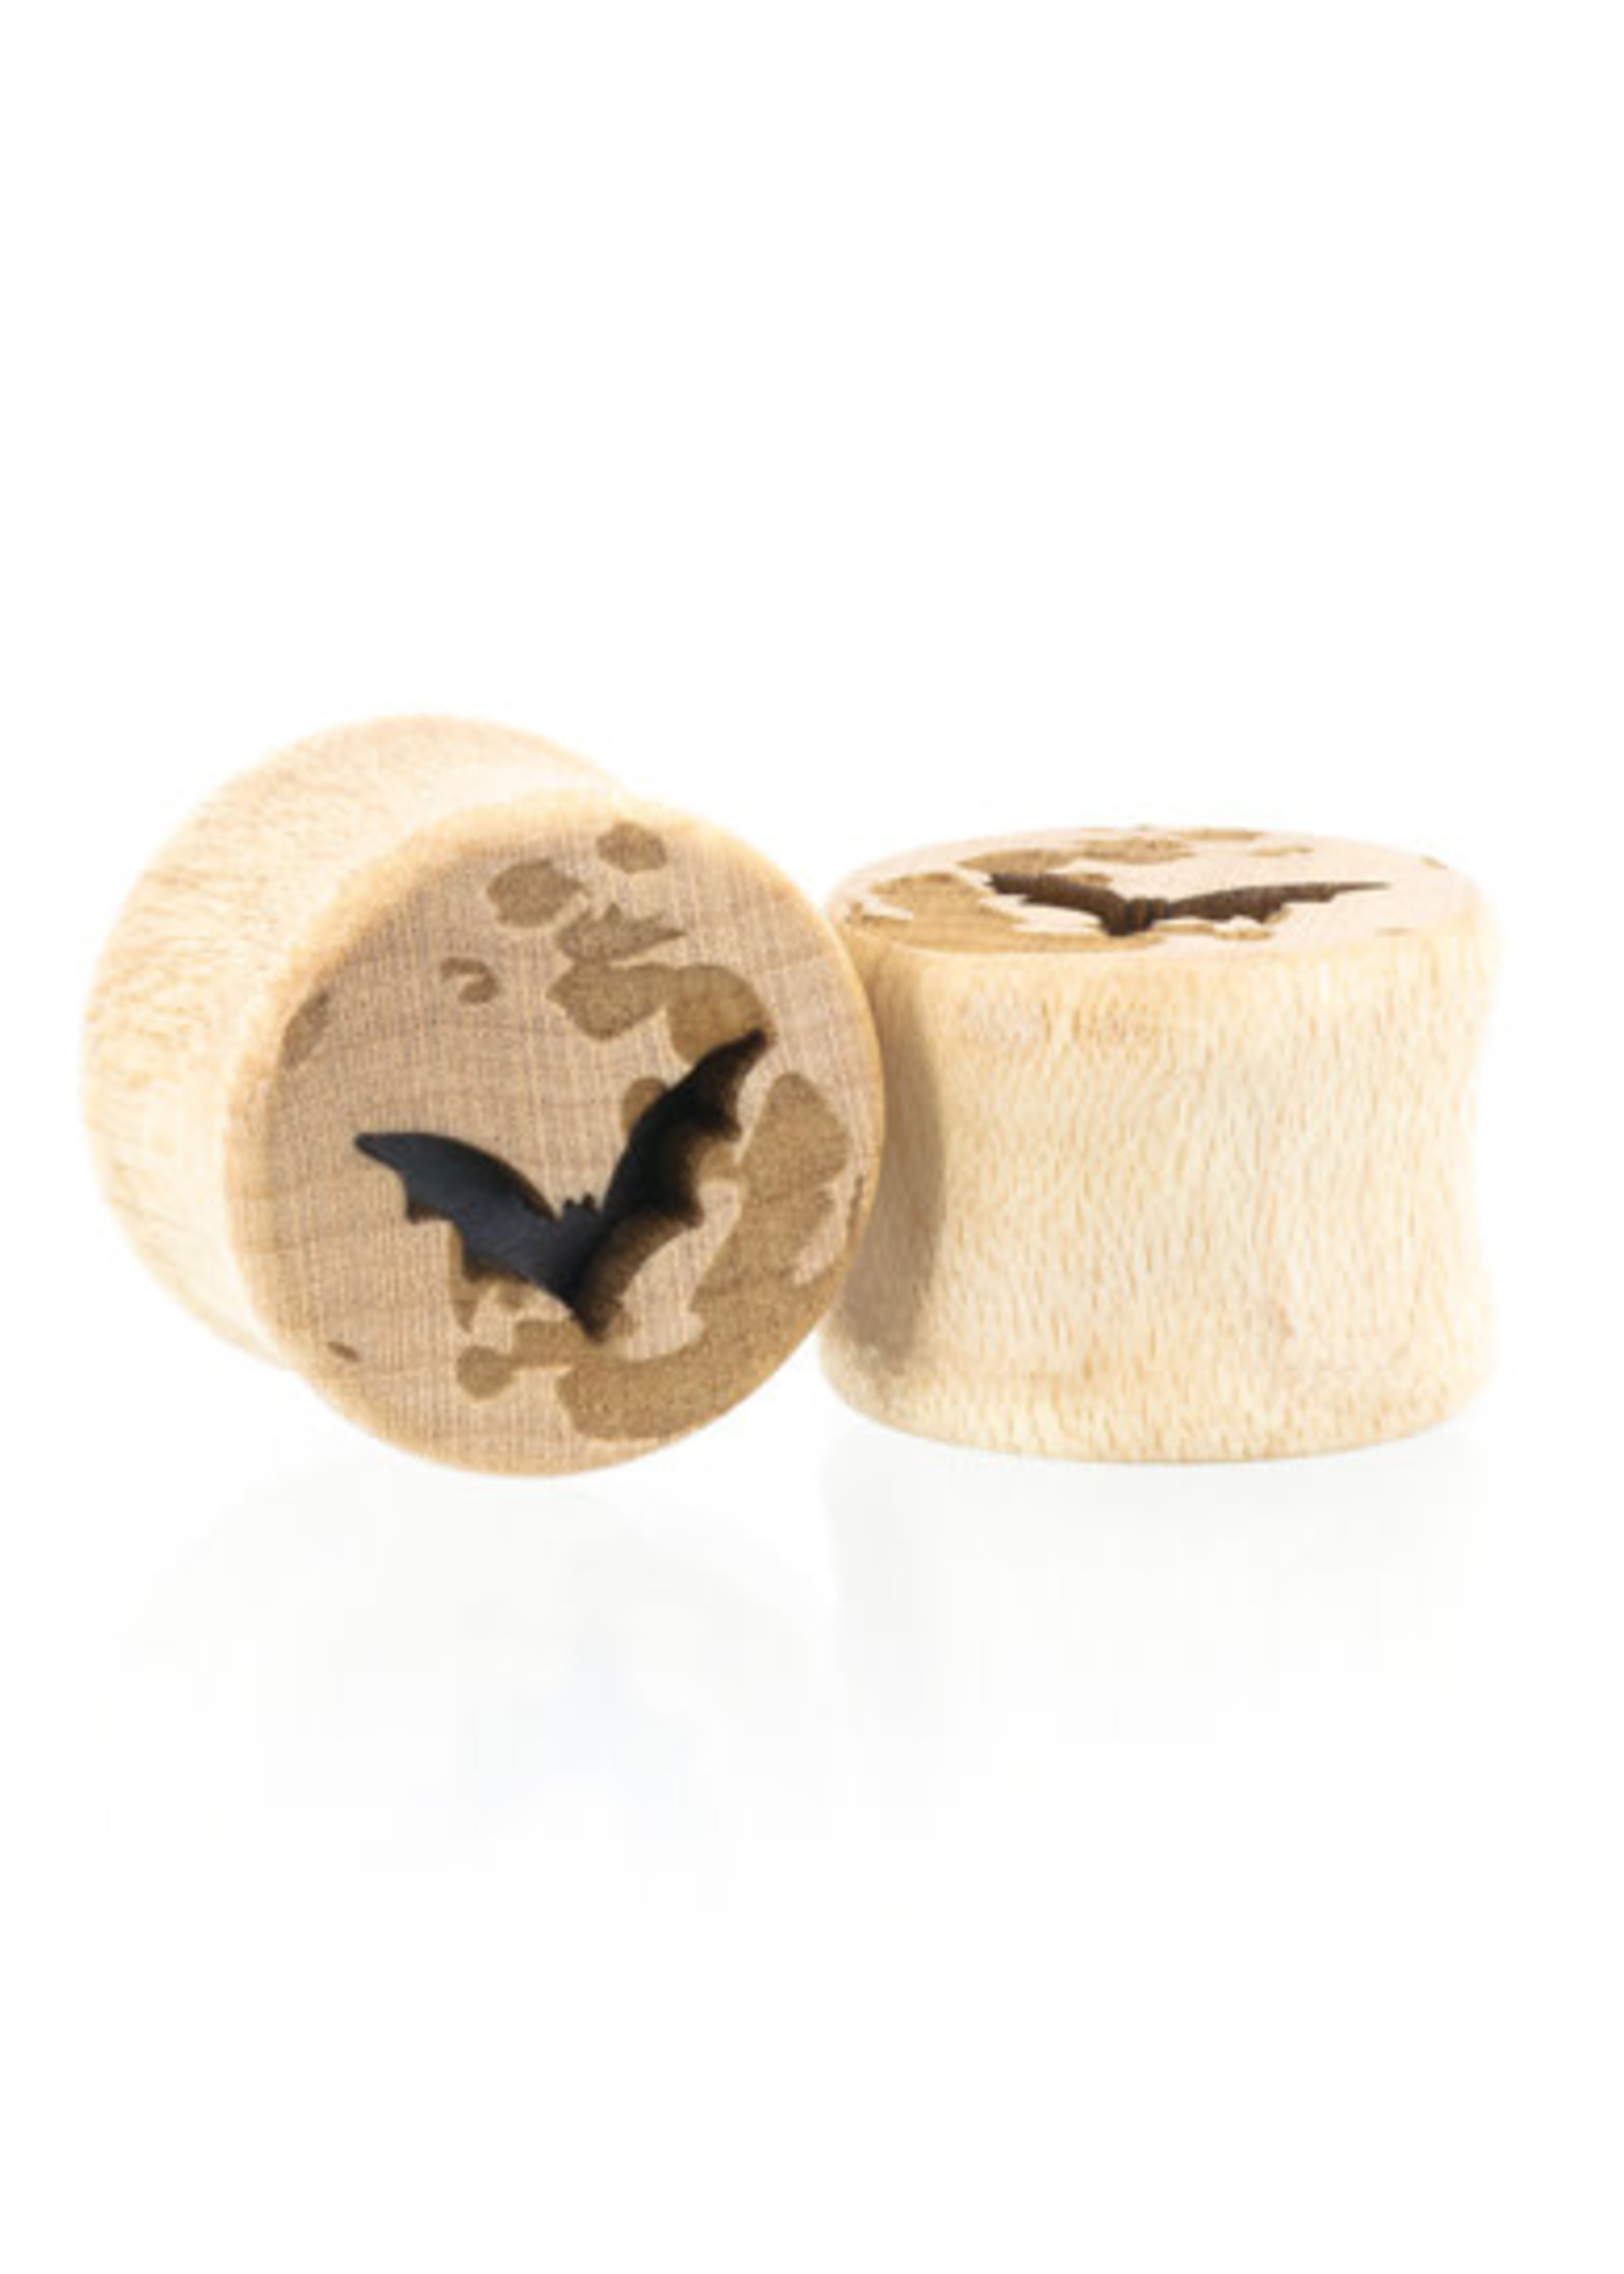 00g Moon Bat Plugs